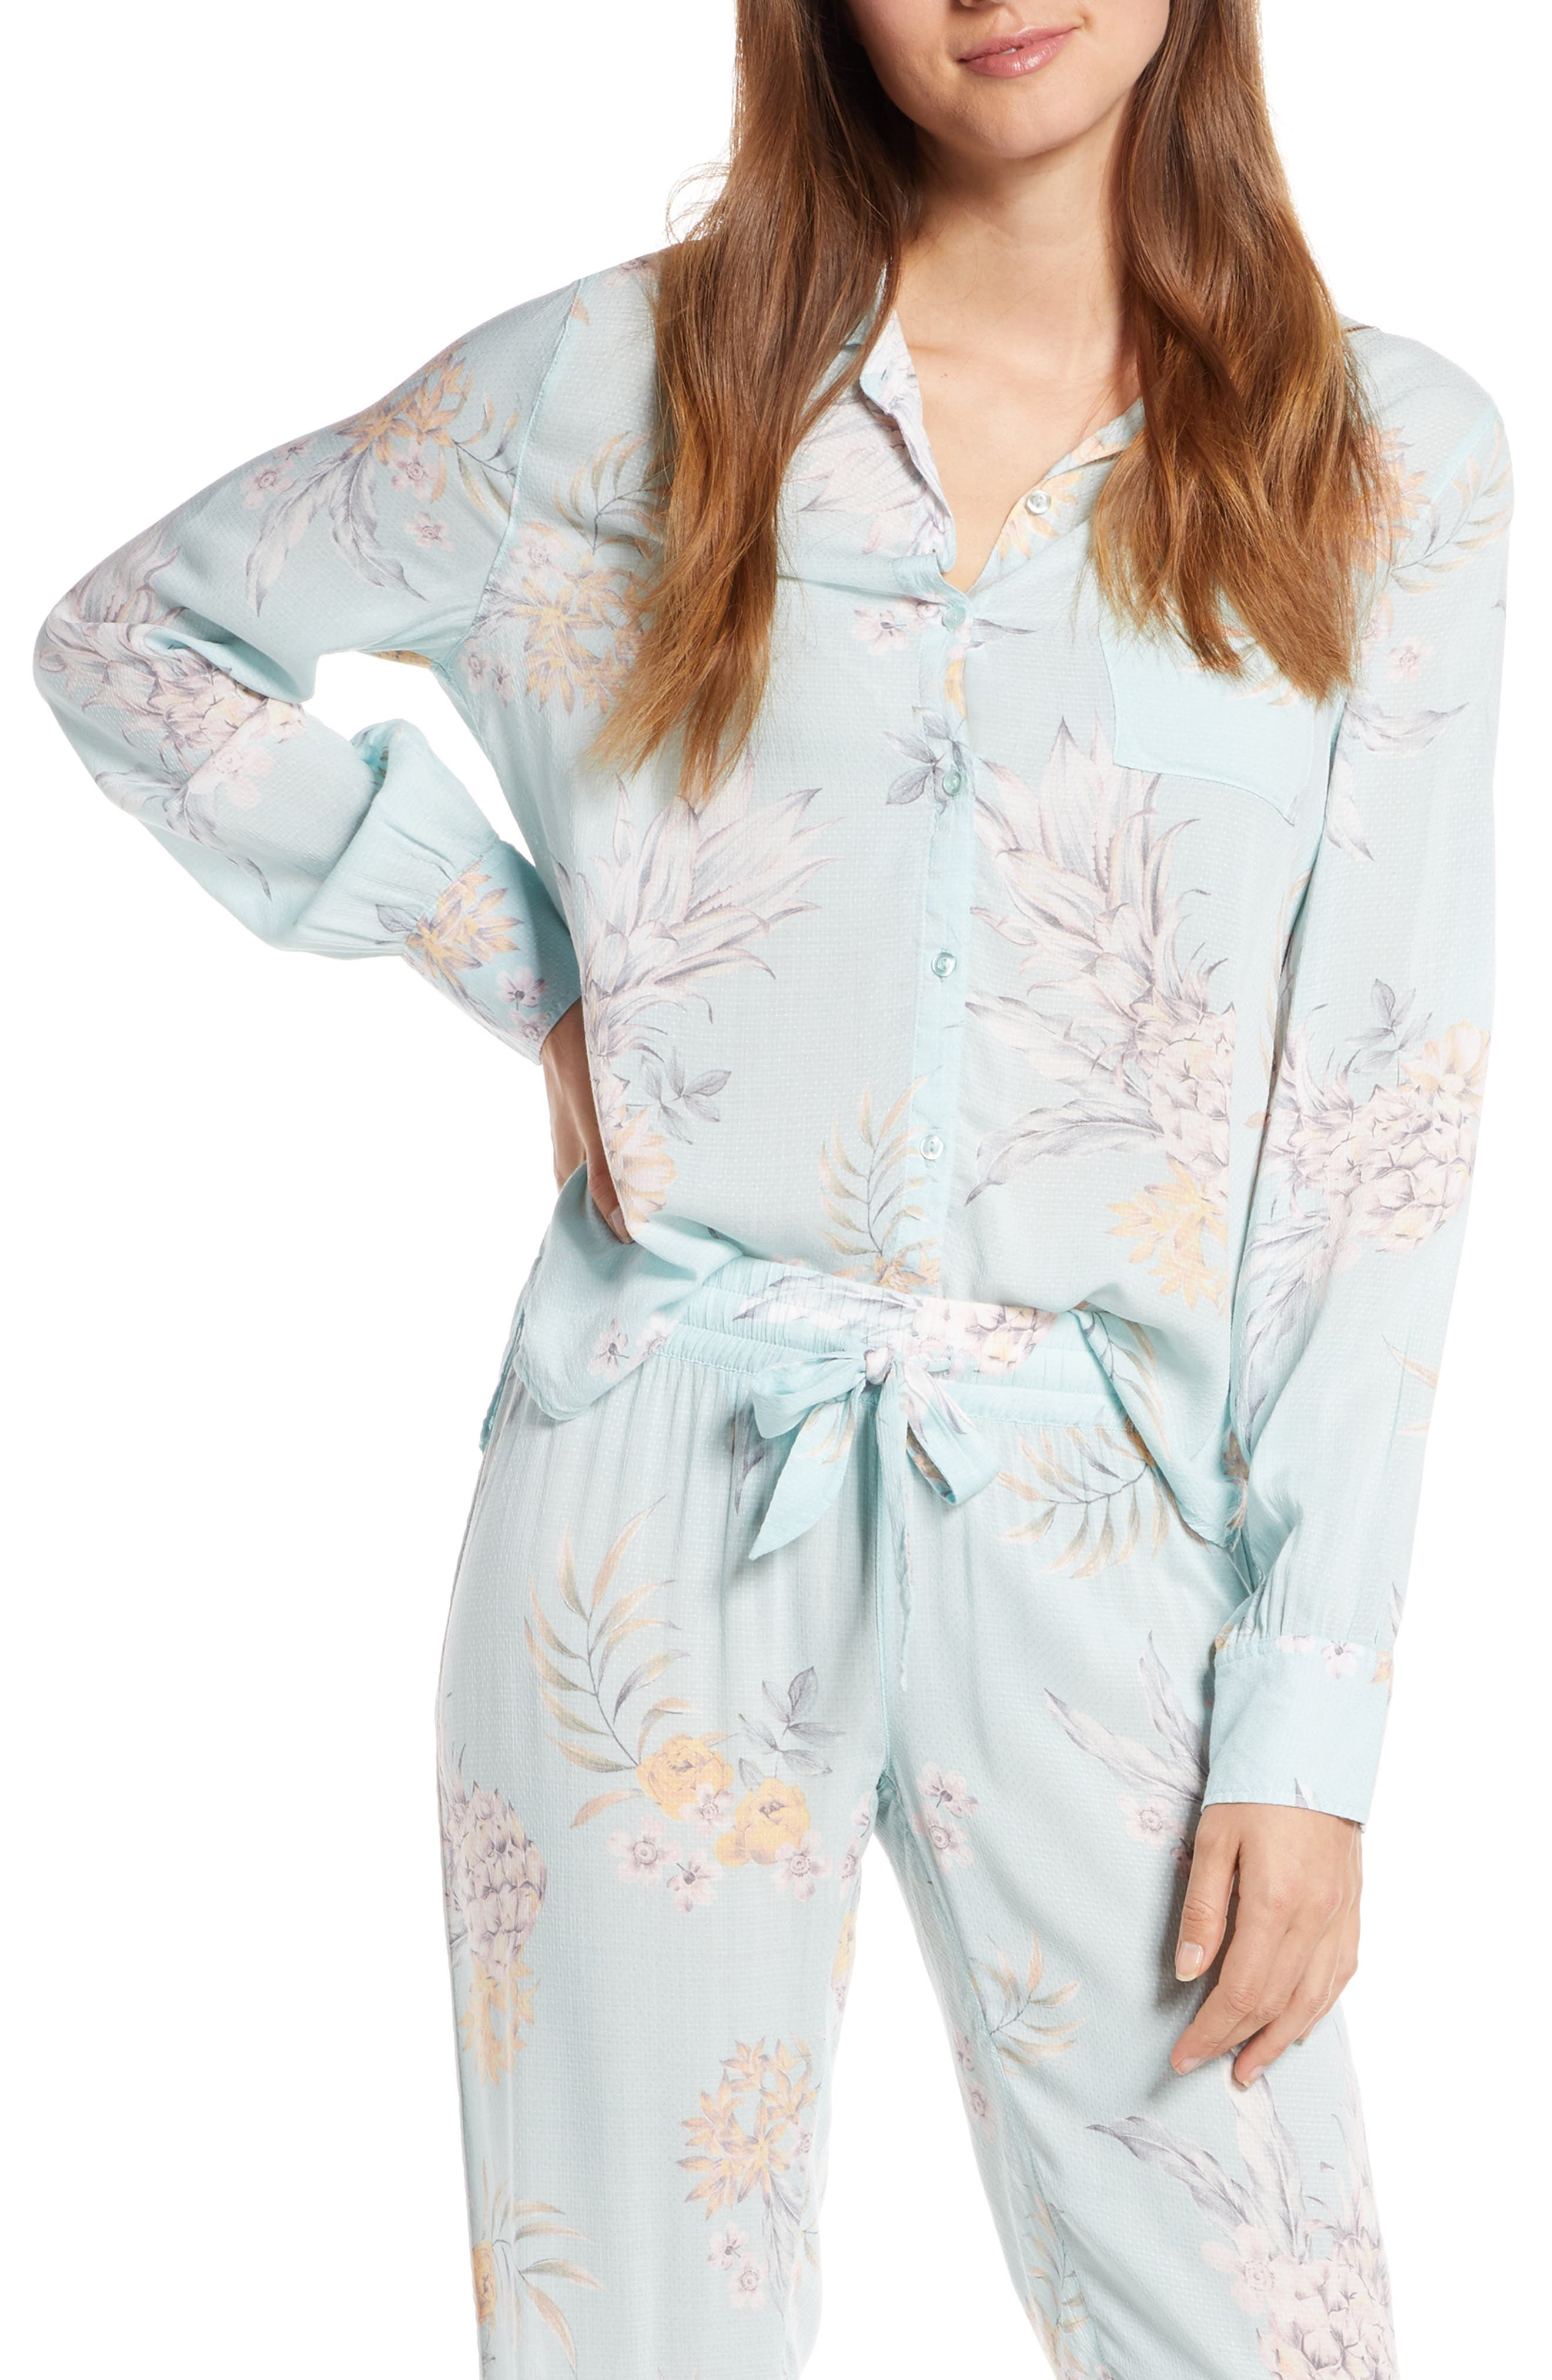 Pj Salvage Paradise Bound Dobby Weave Pajama Top, Green